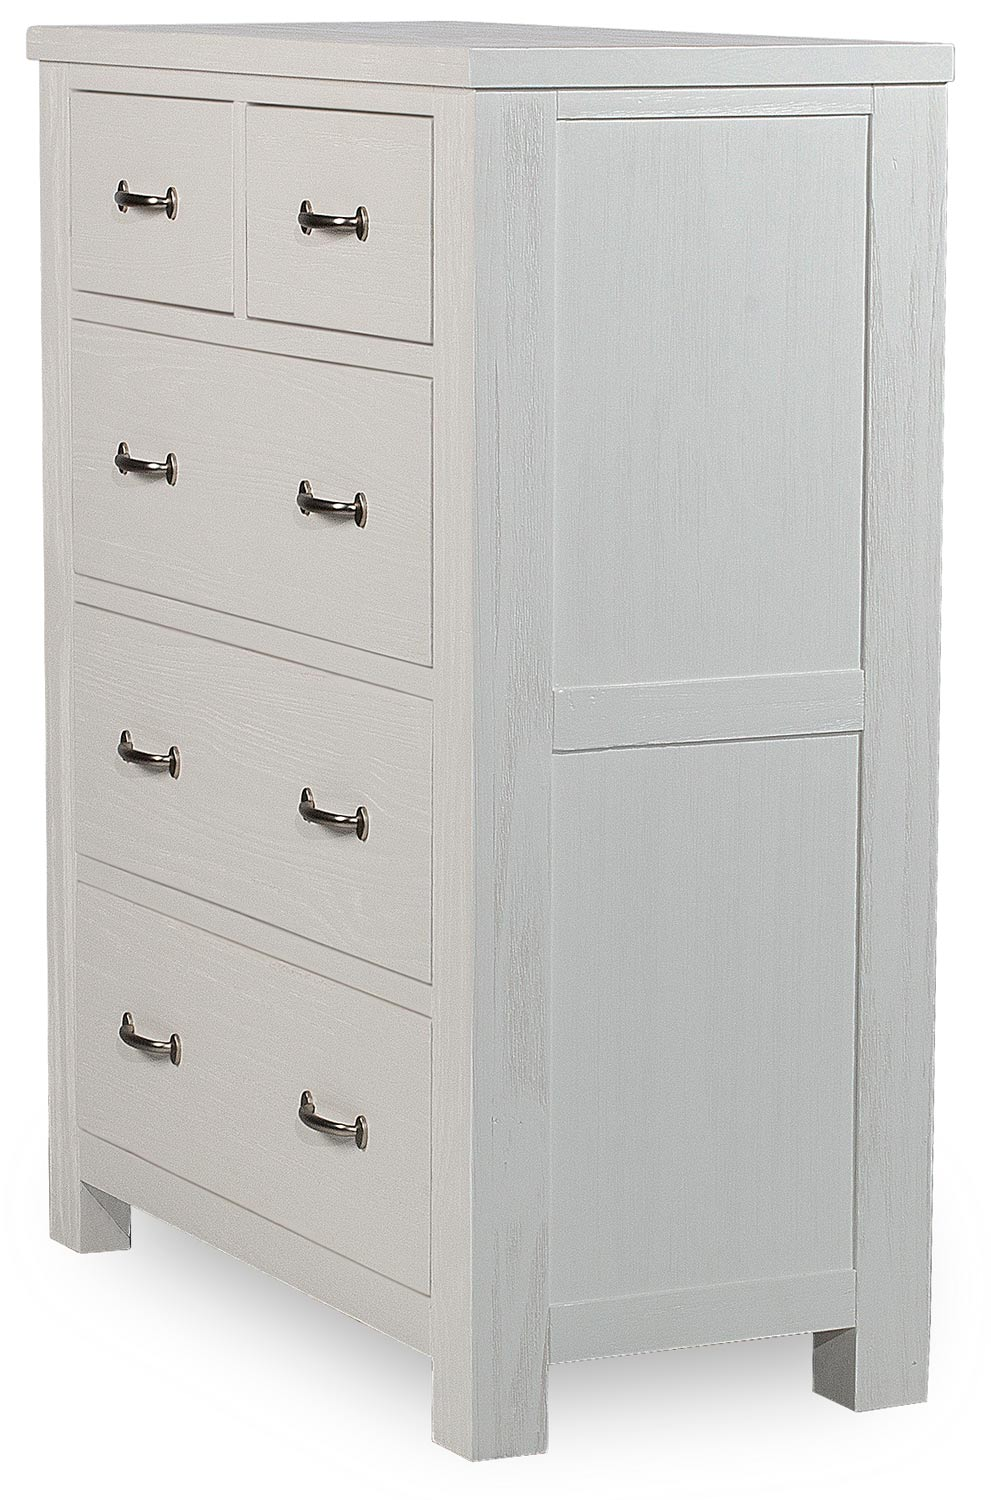 NE Kids Highlands 5 Drawer Chest - White Finish